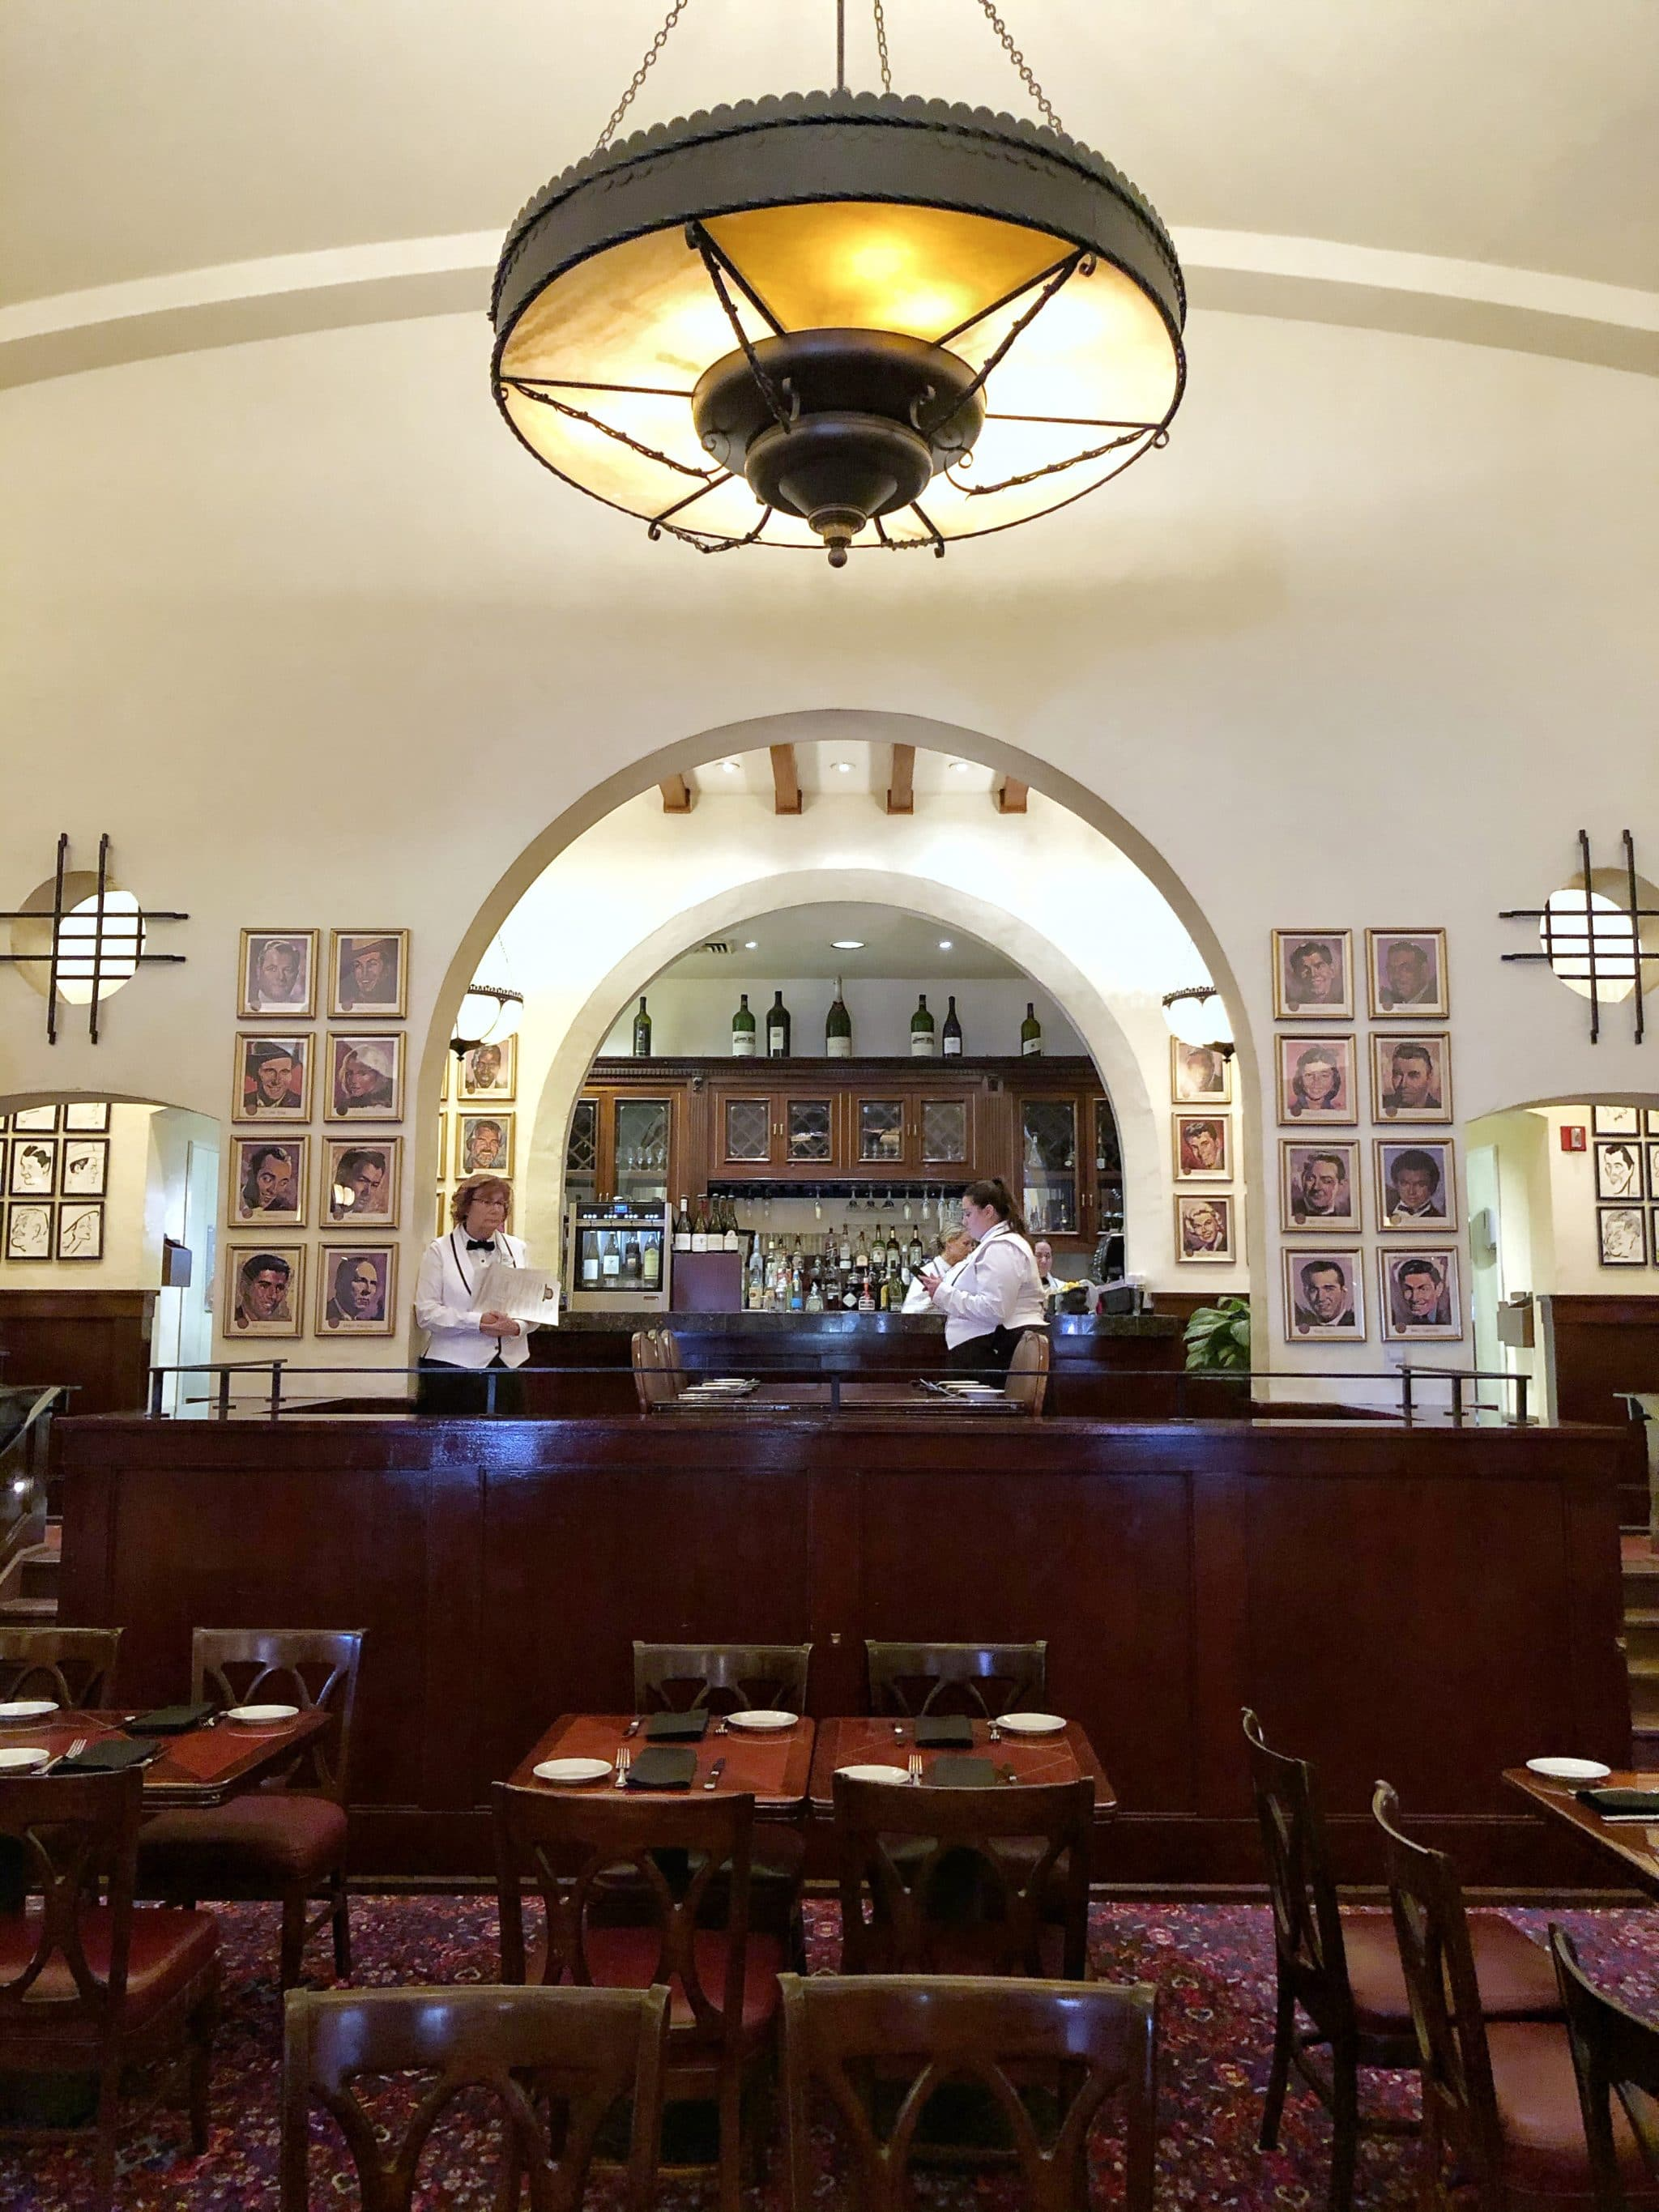 Vegan Options at The Hollywood Brown Derby in Disney's Hollywood Studios at Walt Disney World